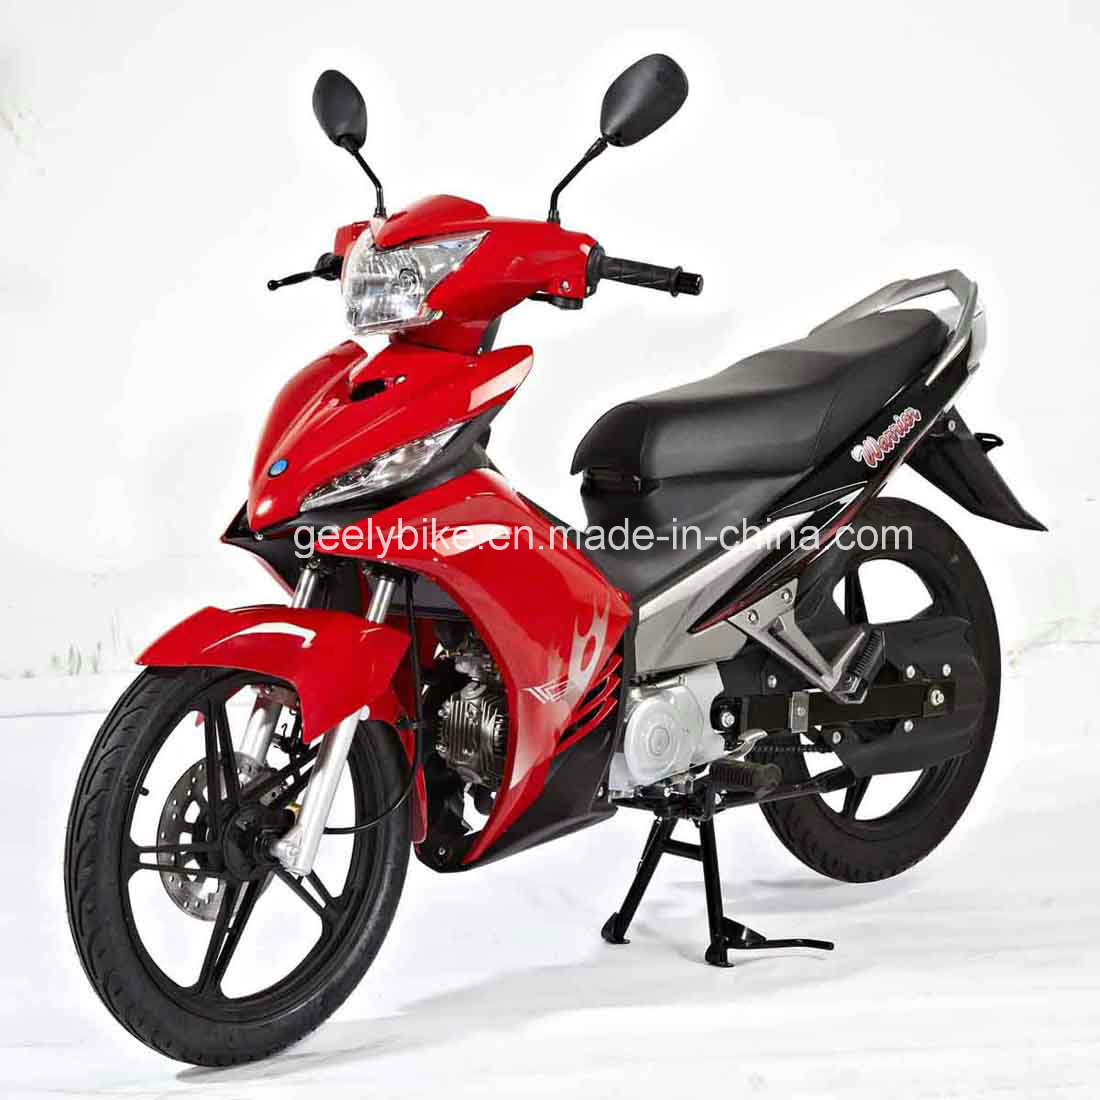 Geely Scooter Wiring Diagram Auto Electrical Numark Mixtrack Pro Starter